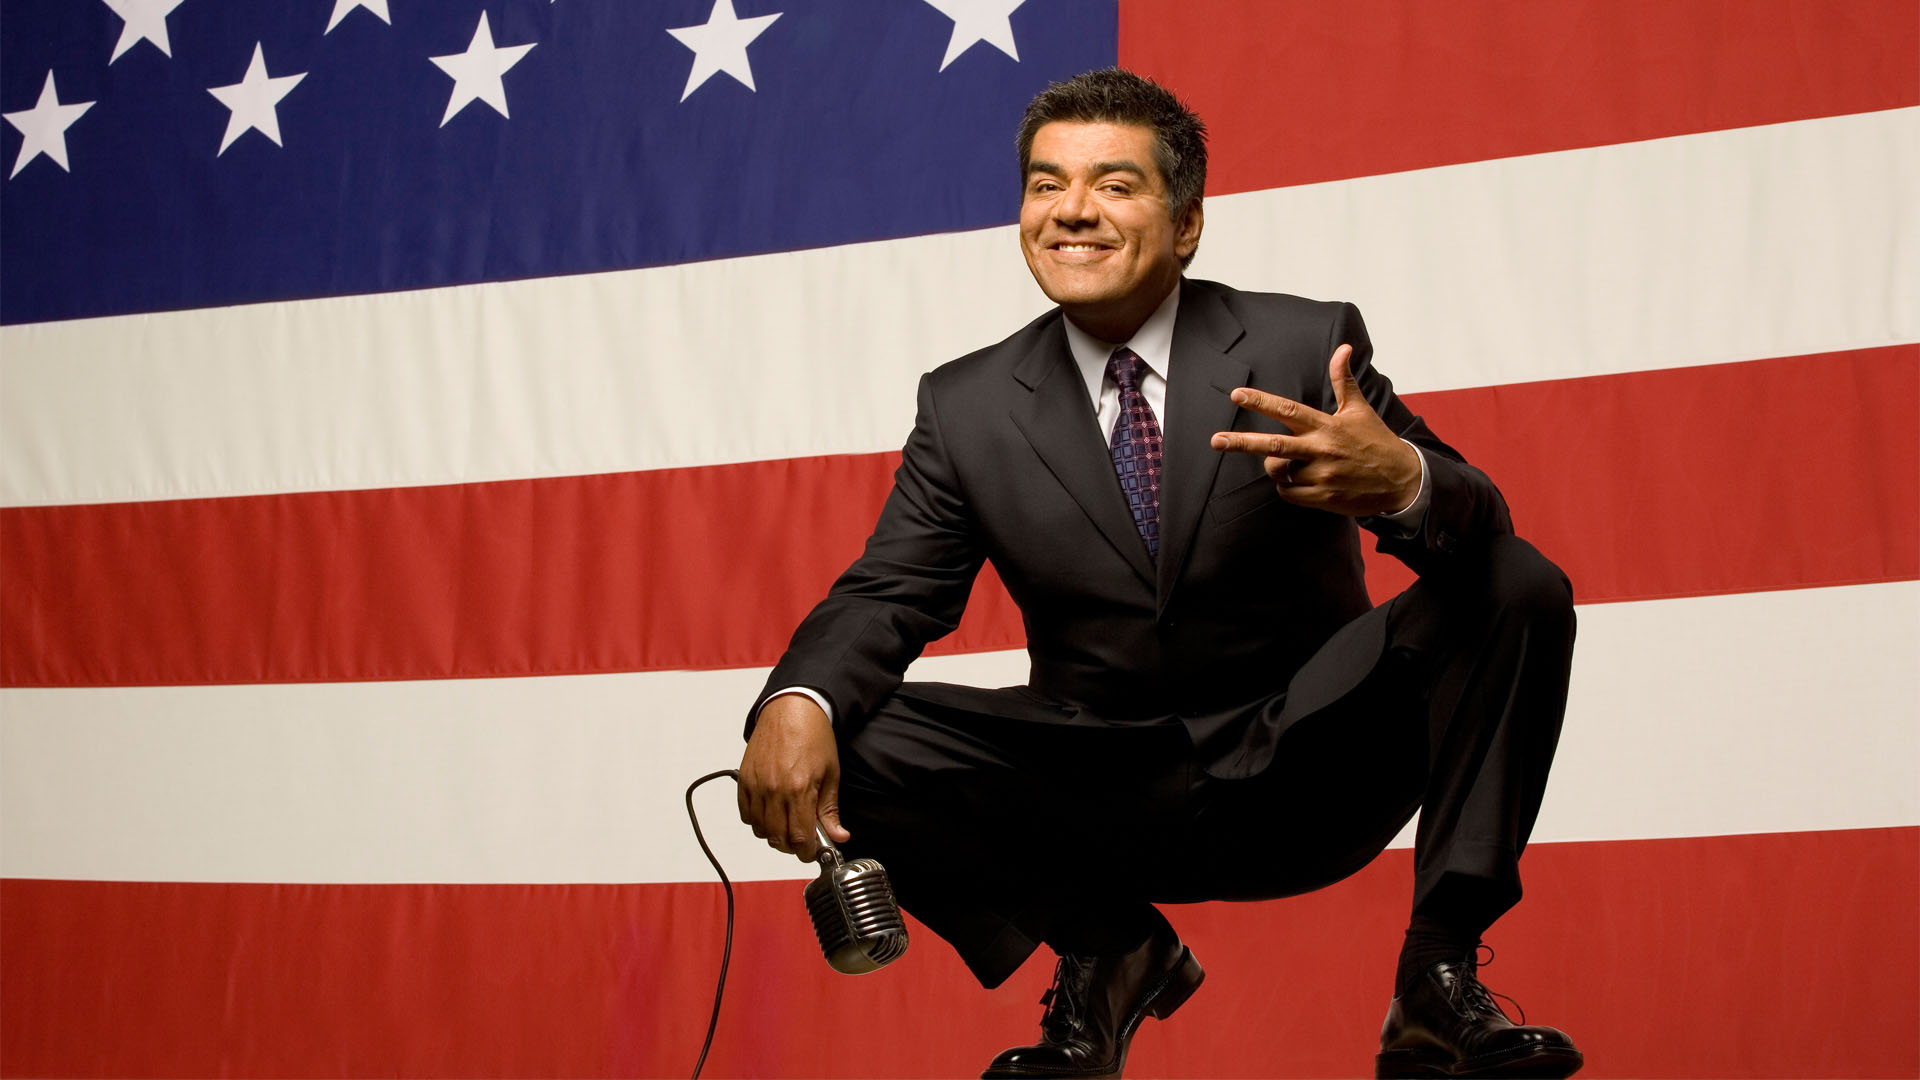 Pictures of george lopez as a child George Lopez Pictures, Photos Images - Zimbio